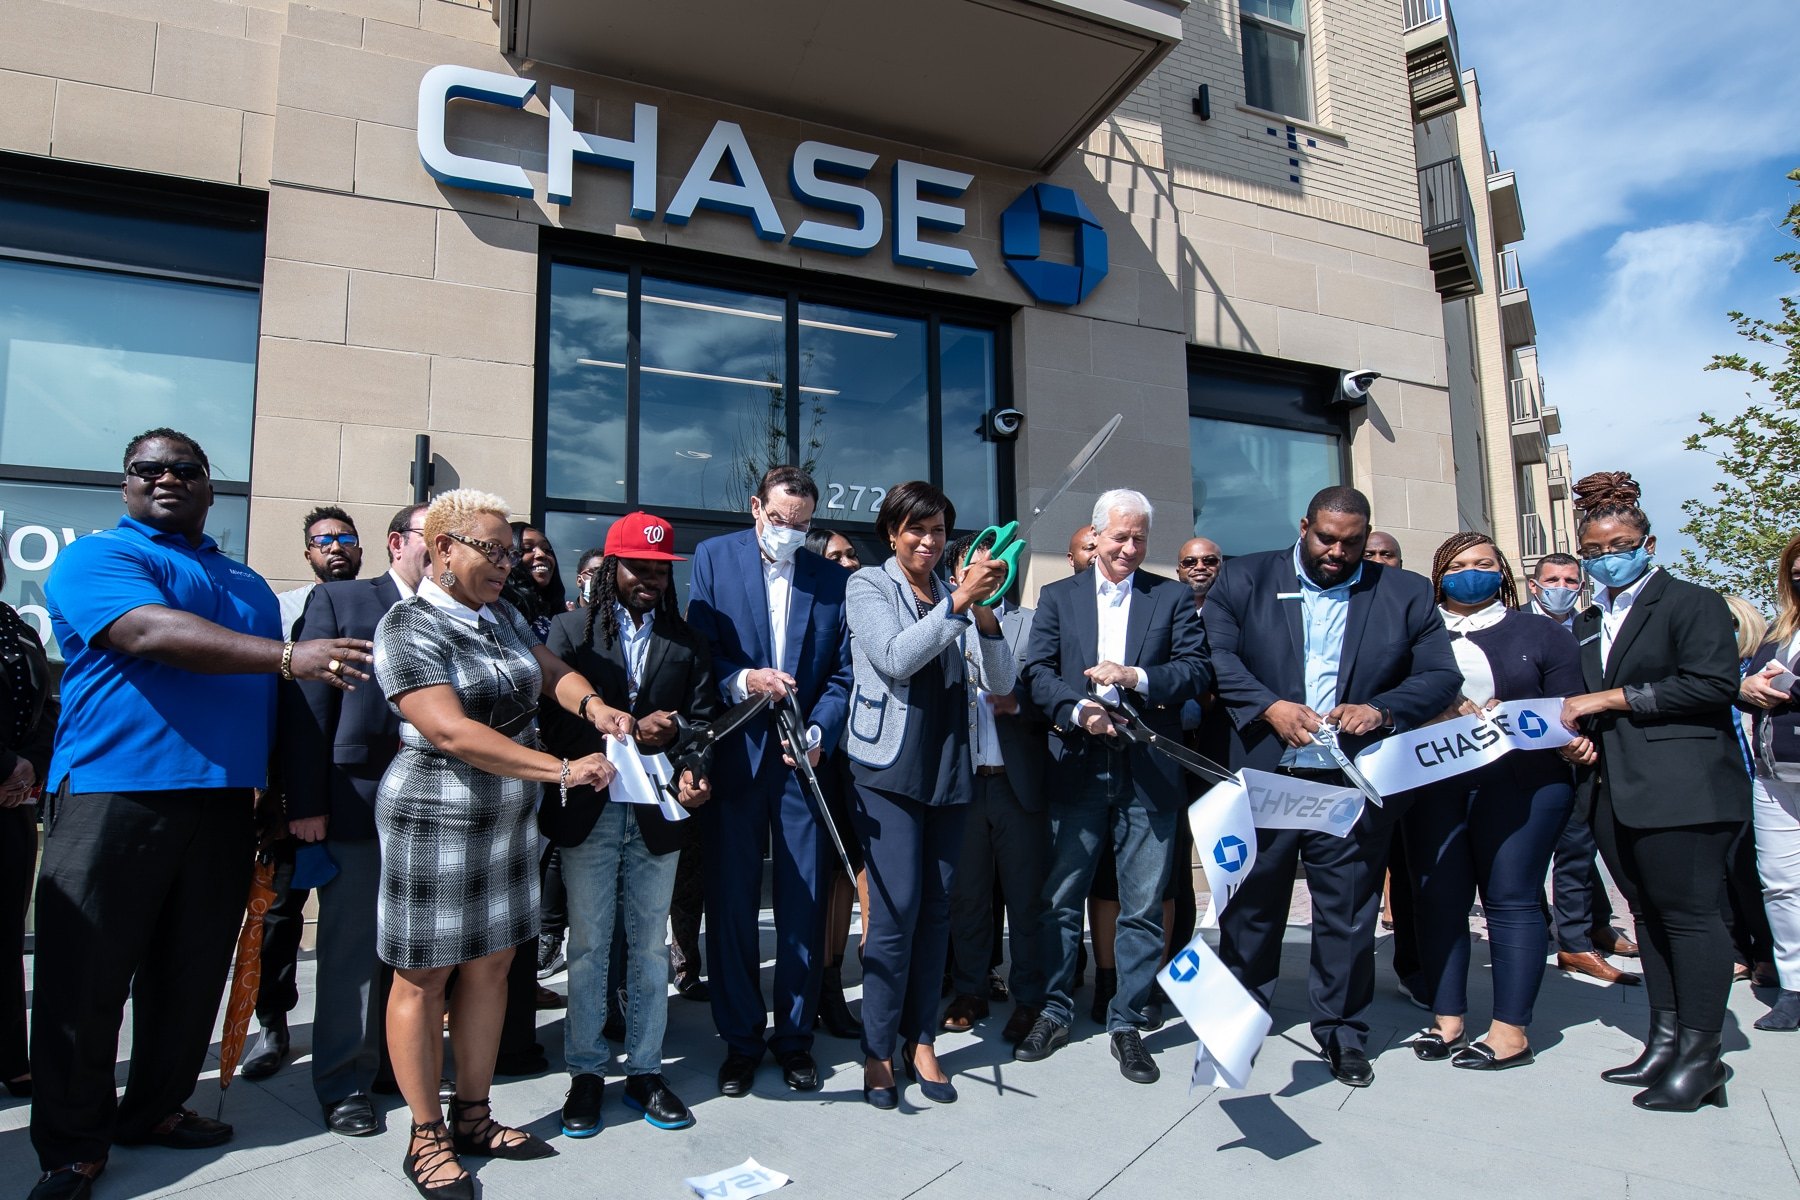 WC Smith Welcomes Chase Bank Community Center to Skyland Town Center